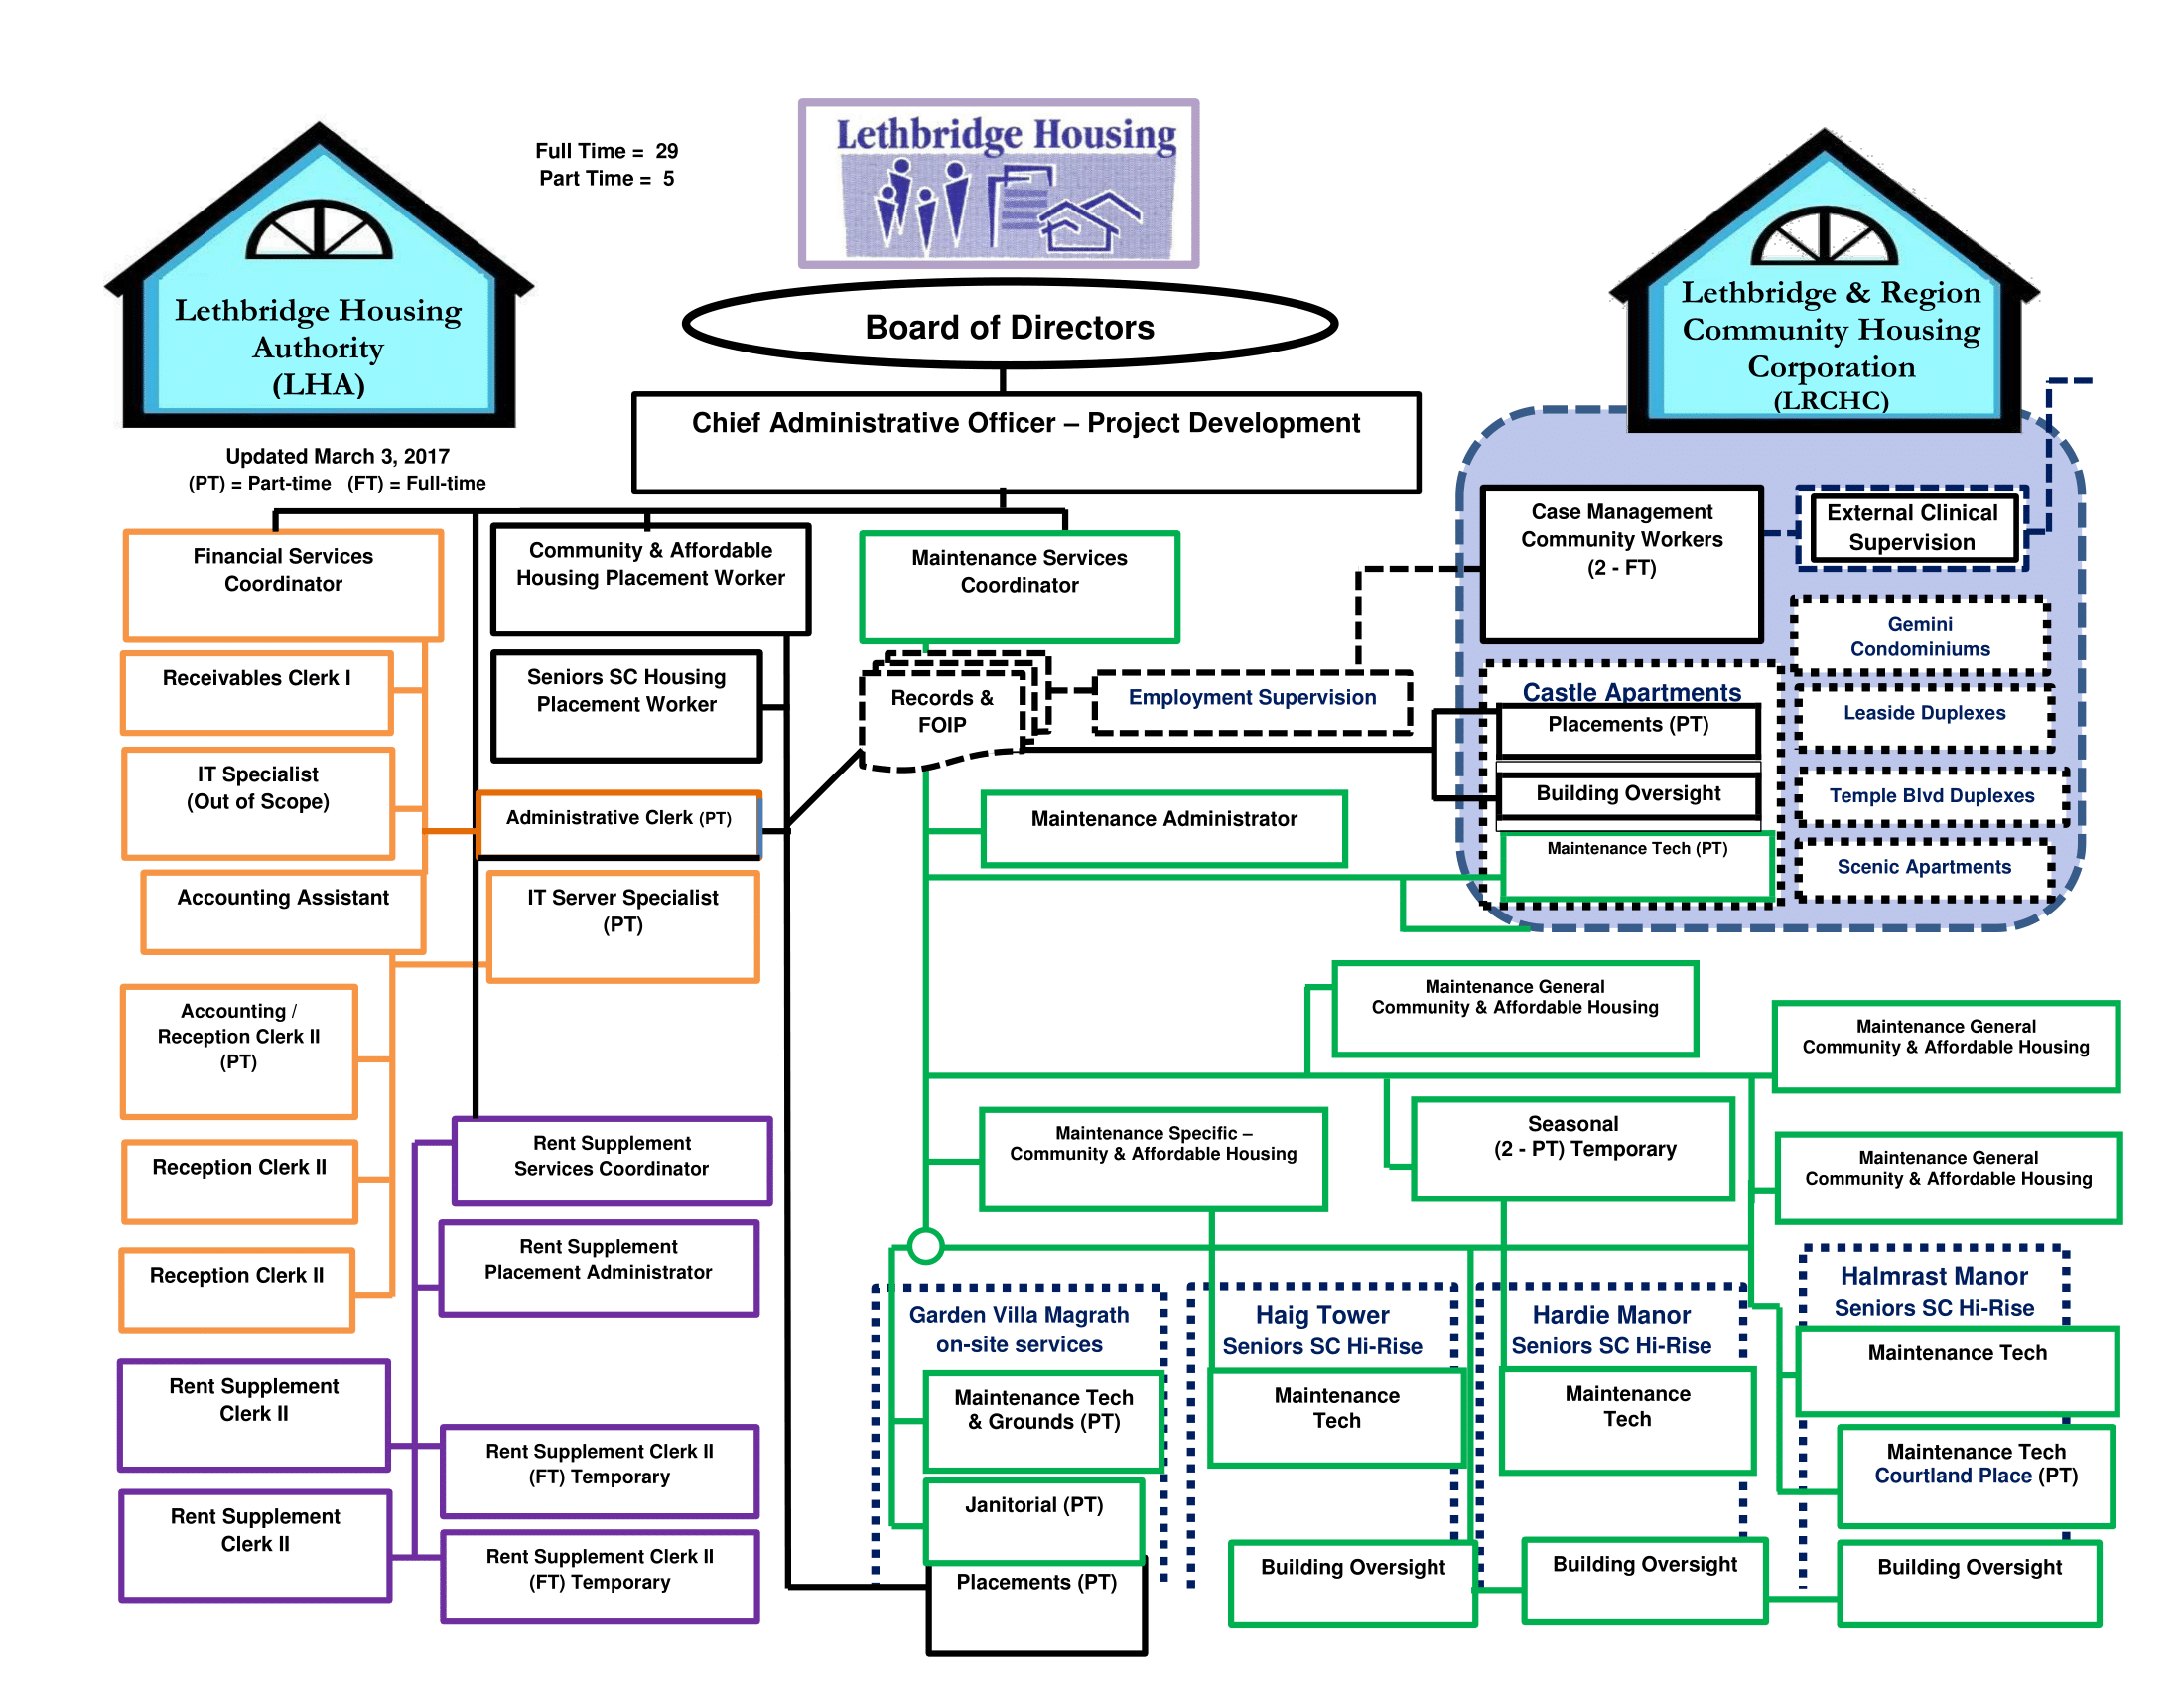 Real Estate Organizational Chart : Organizational chart lethbridge housing authority